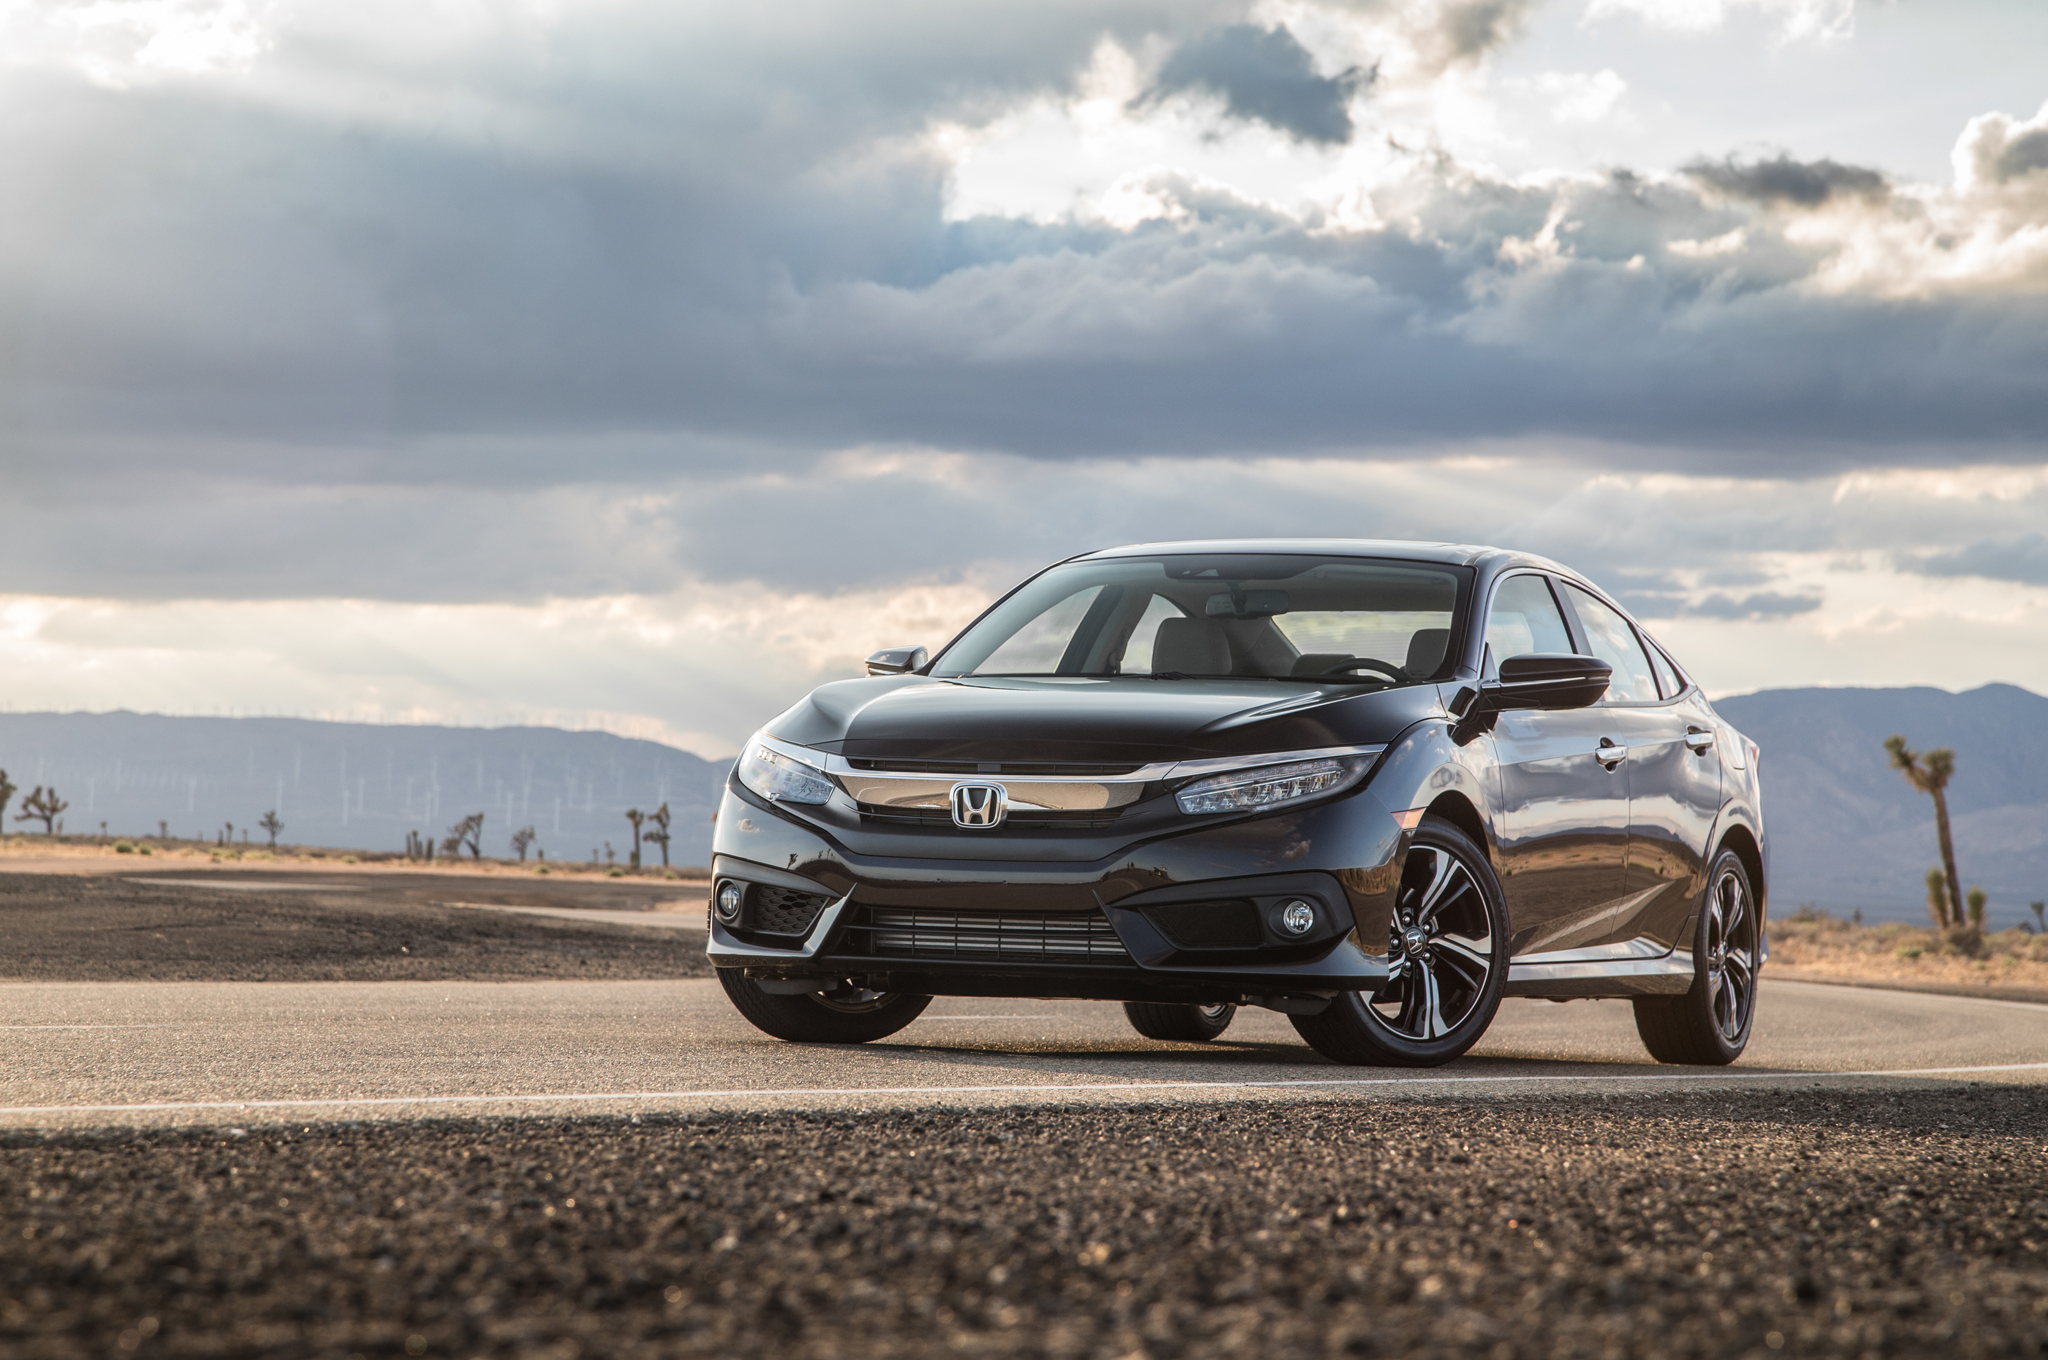 2016 Honda Civic Touring Sedan Black (View 31 of 36)